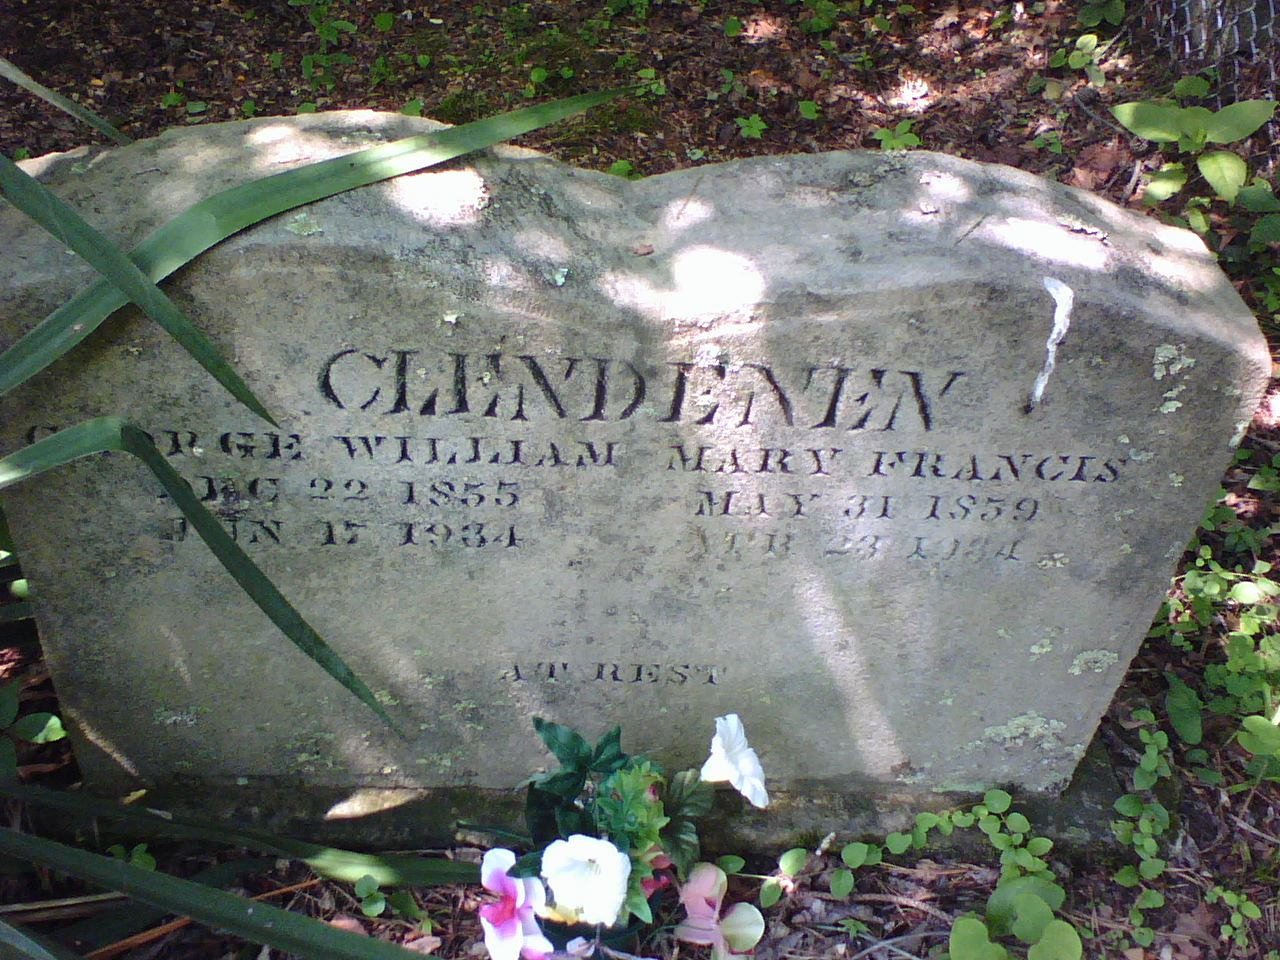 William Clendenen